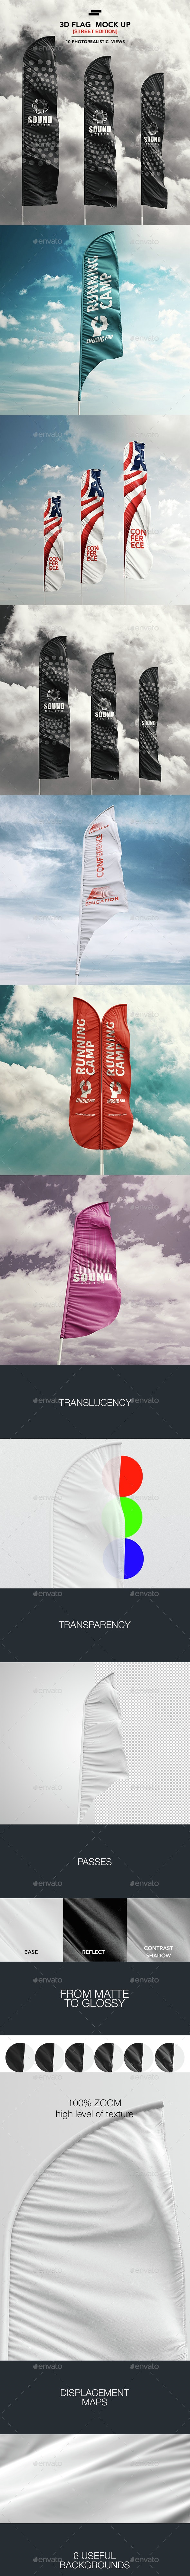 3D Feather Flags / Bow / Sail Flag Mockup - Signage Print